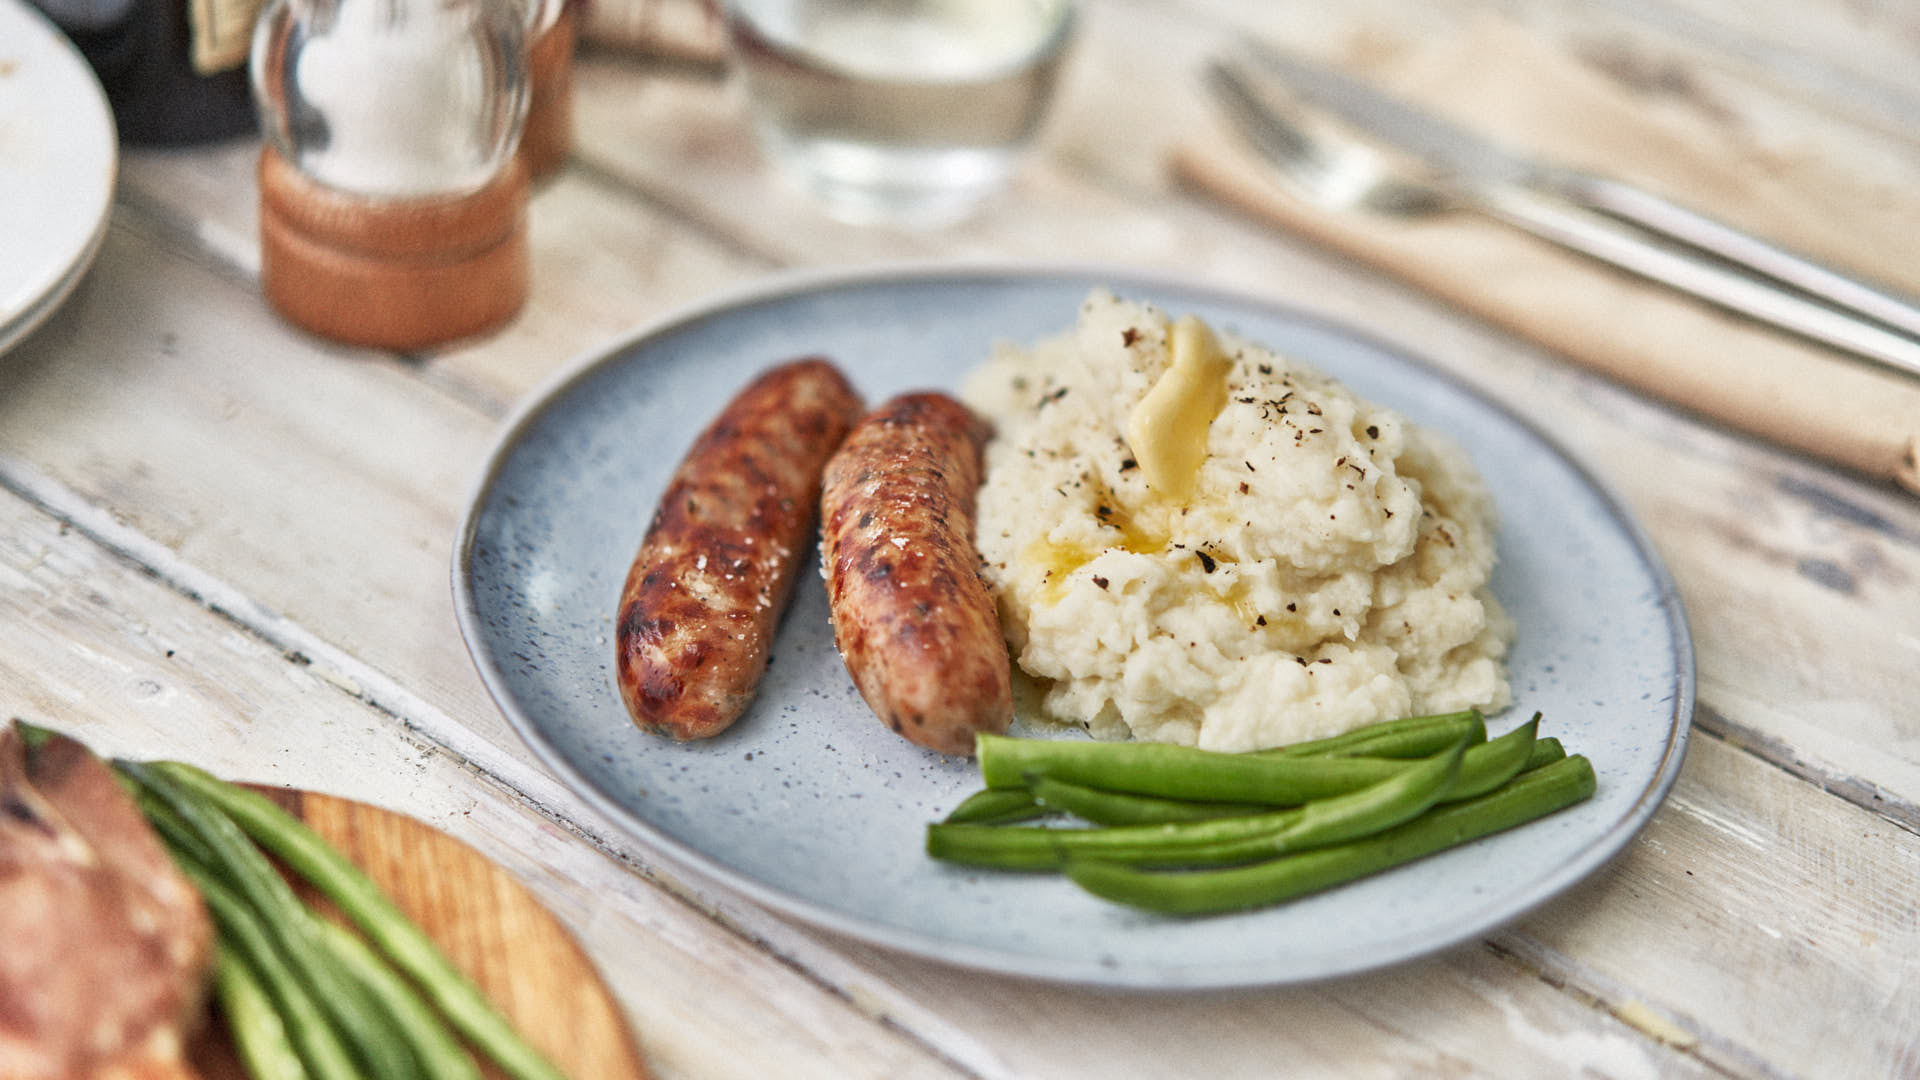 Low Carb High Fat Meal. Two pork sausages and Cauliflower Mash with green beans. On a light blue plate.On Wooden Table. Cutlery and condiments out of focus in background.